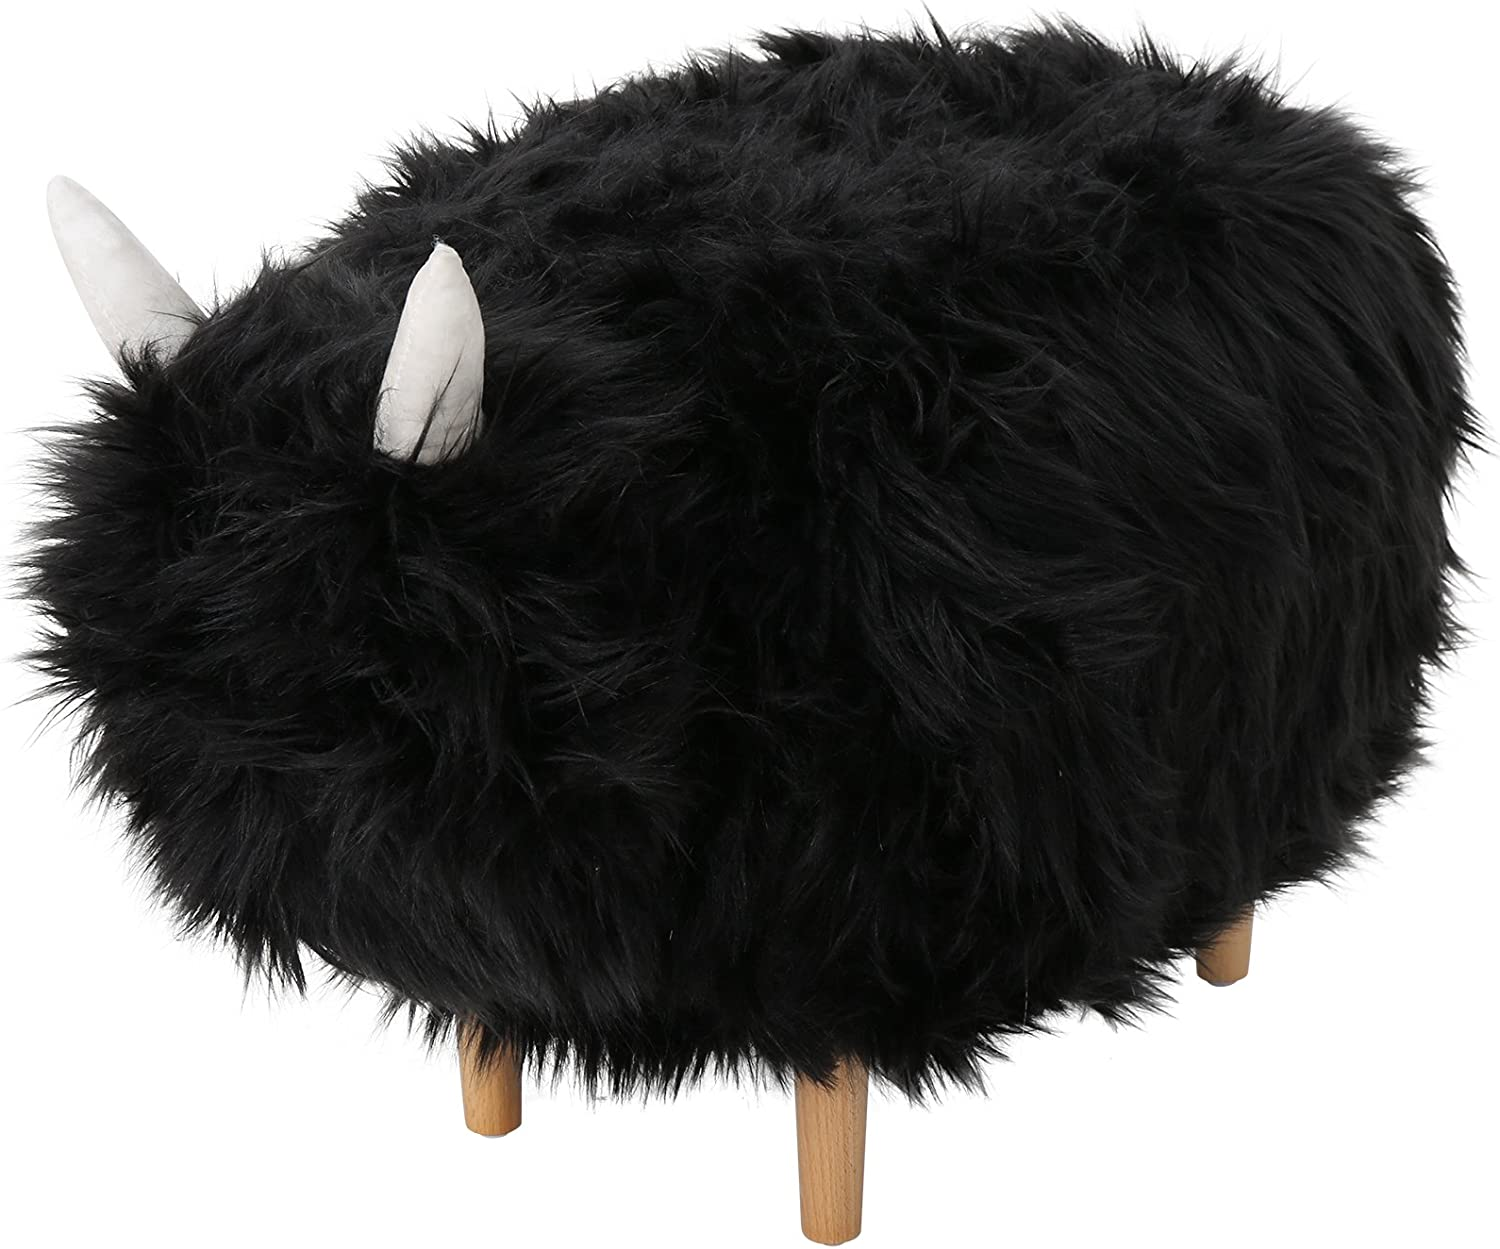 Christopher Knight Home Kamla Furry Yak Ottoman, Black, Natural Finish